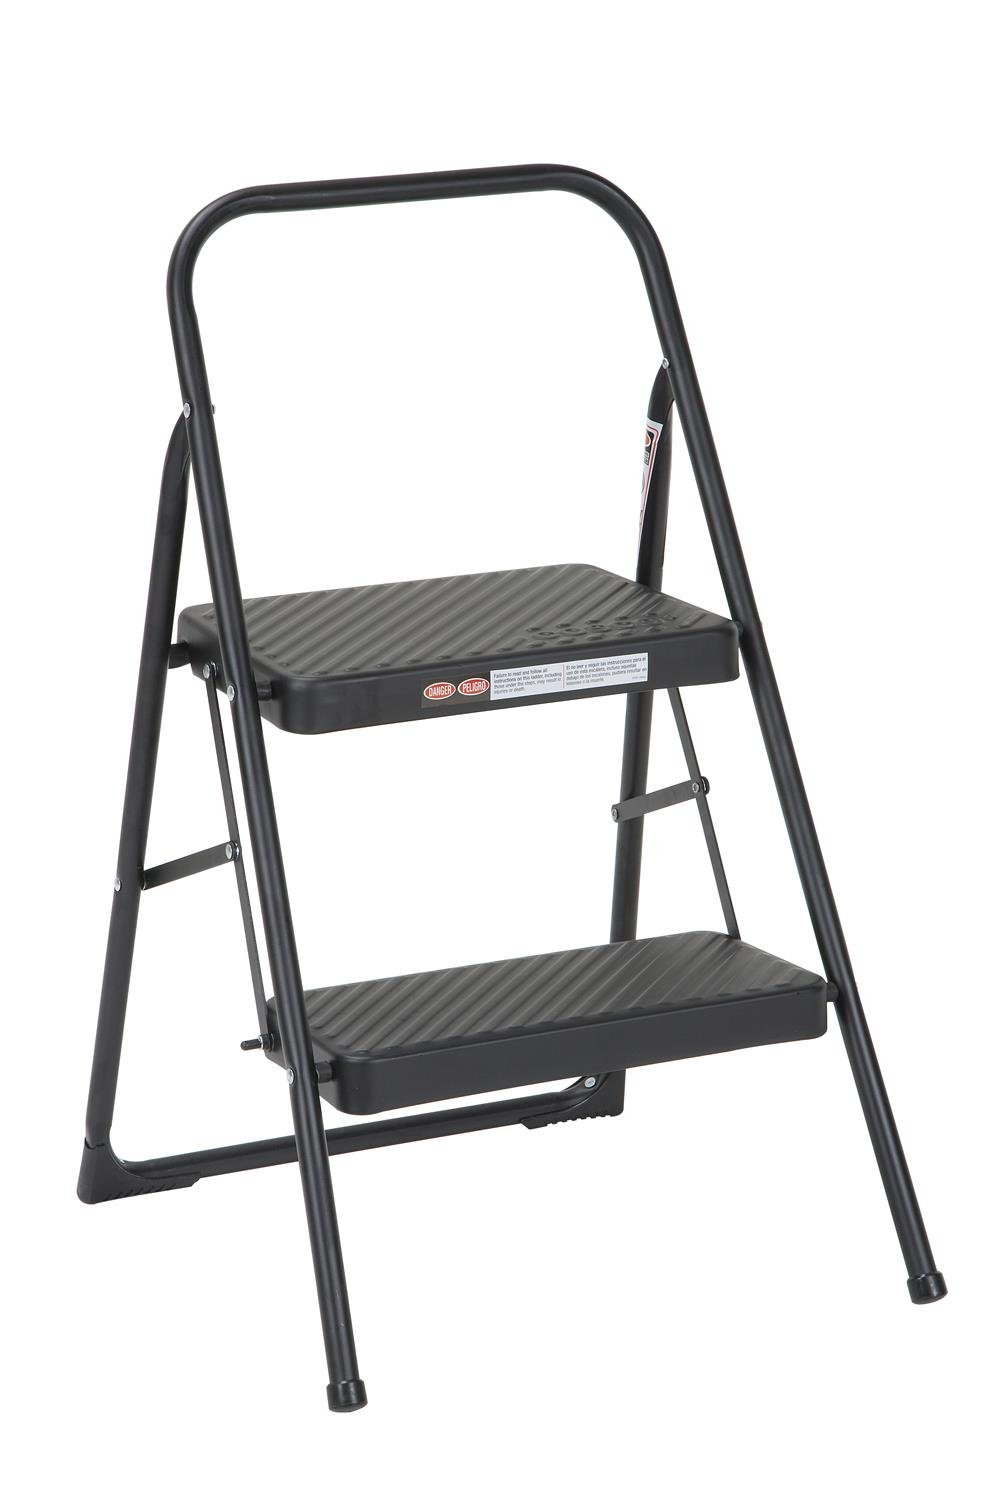 Cosco Two Step Household Folding Step Stool by Cosco